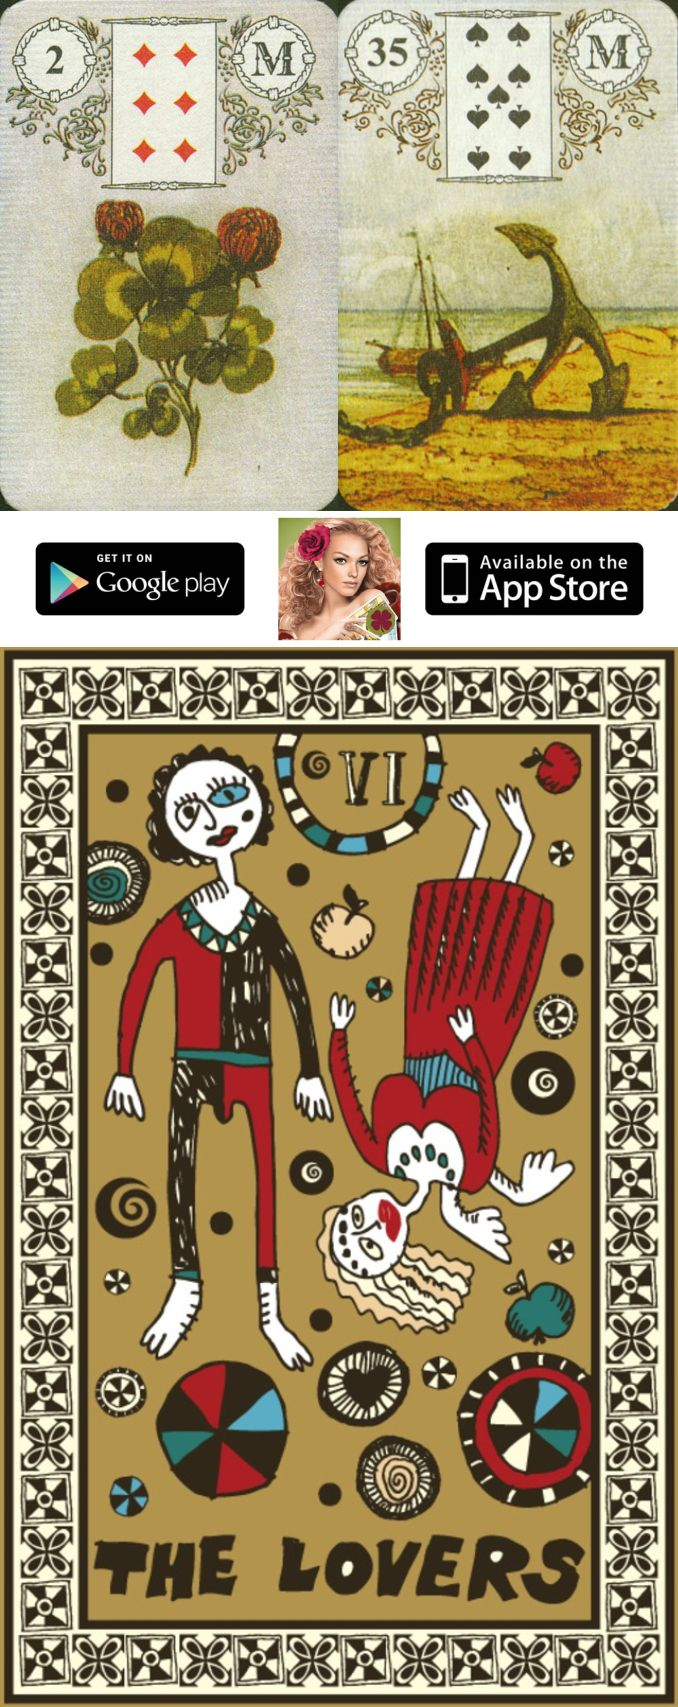 Get the FREE mobile app on your phone or tablet and have fun vintage german lenormand, cafe lenormand and lenormand cards wiki, french cartomancy lenormand and lenormand flowers.